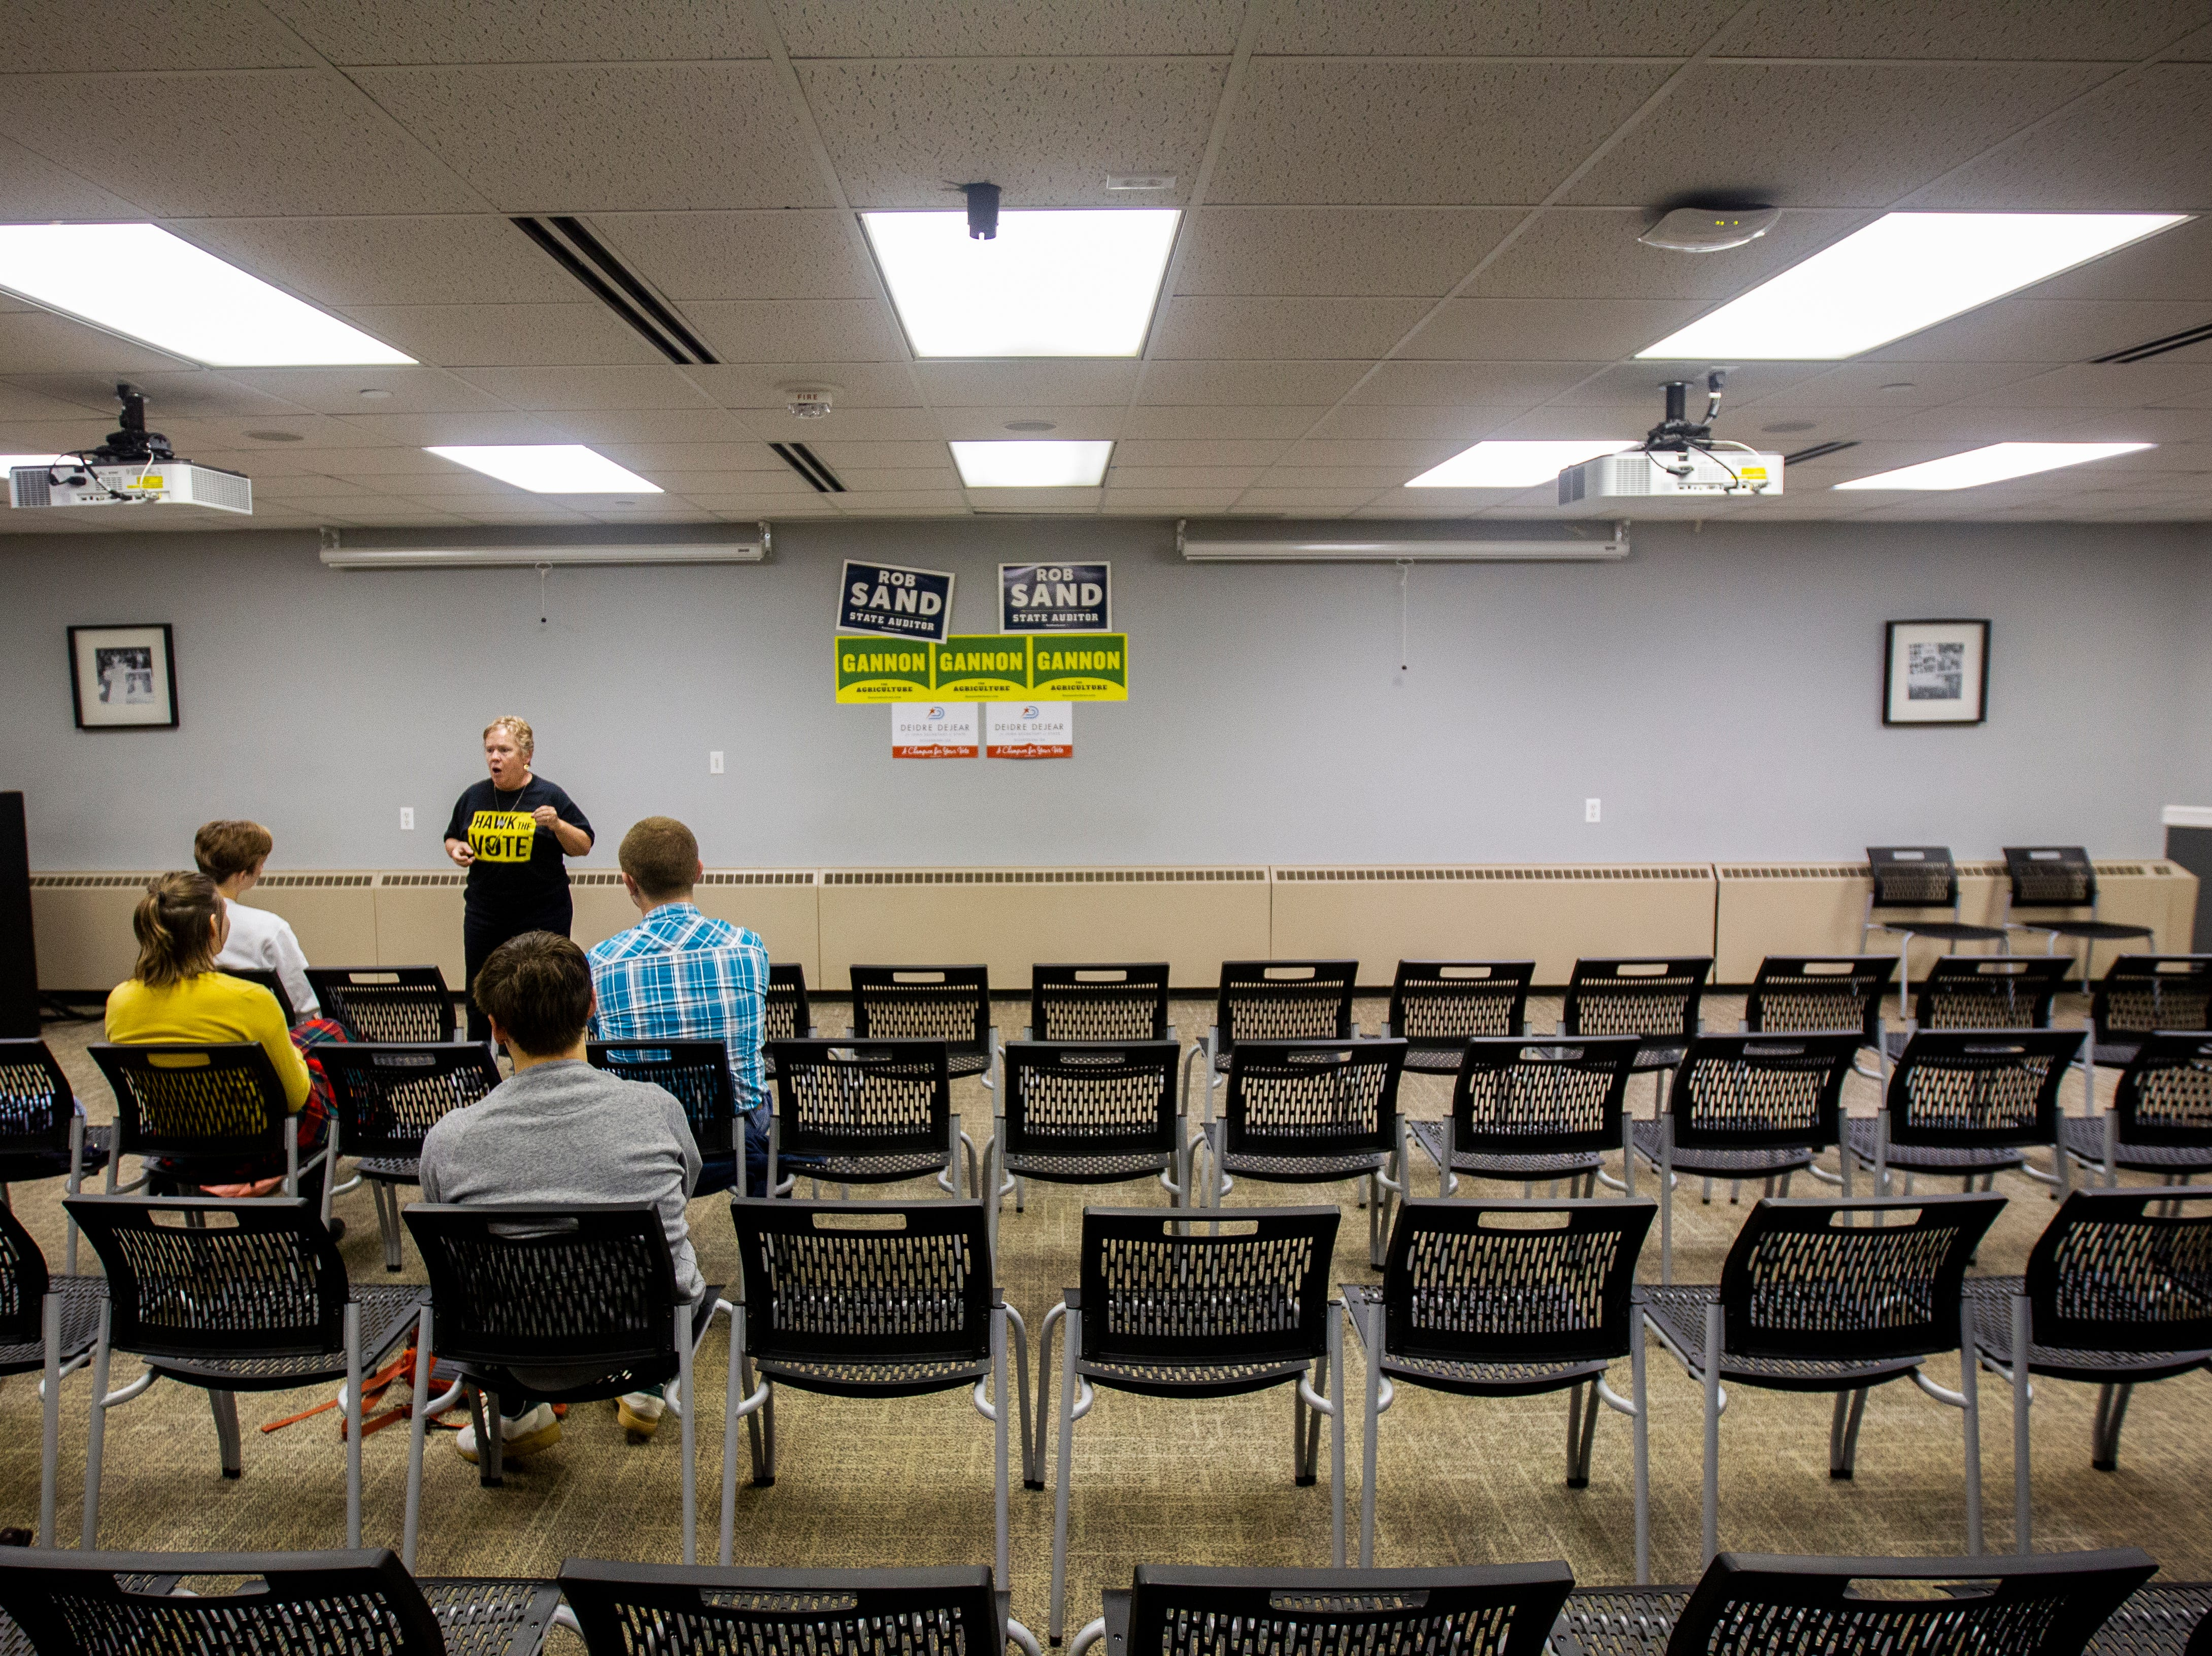 Sue Dvorsky introduces candidates during an event on Wednesday, Sept. 26, 2018, at the Iowa Memorial Union on the University of Iowa campus in Iowa City.